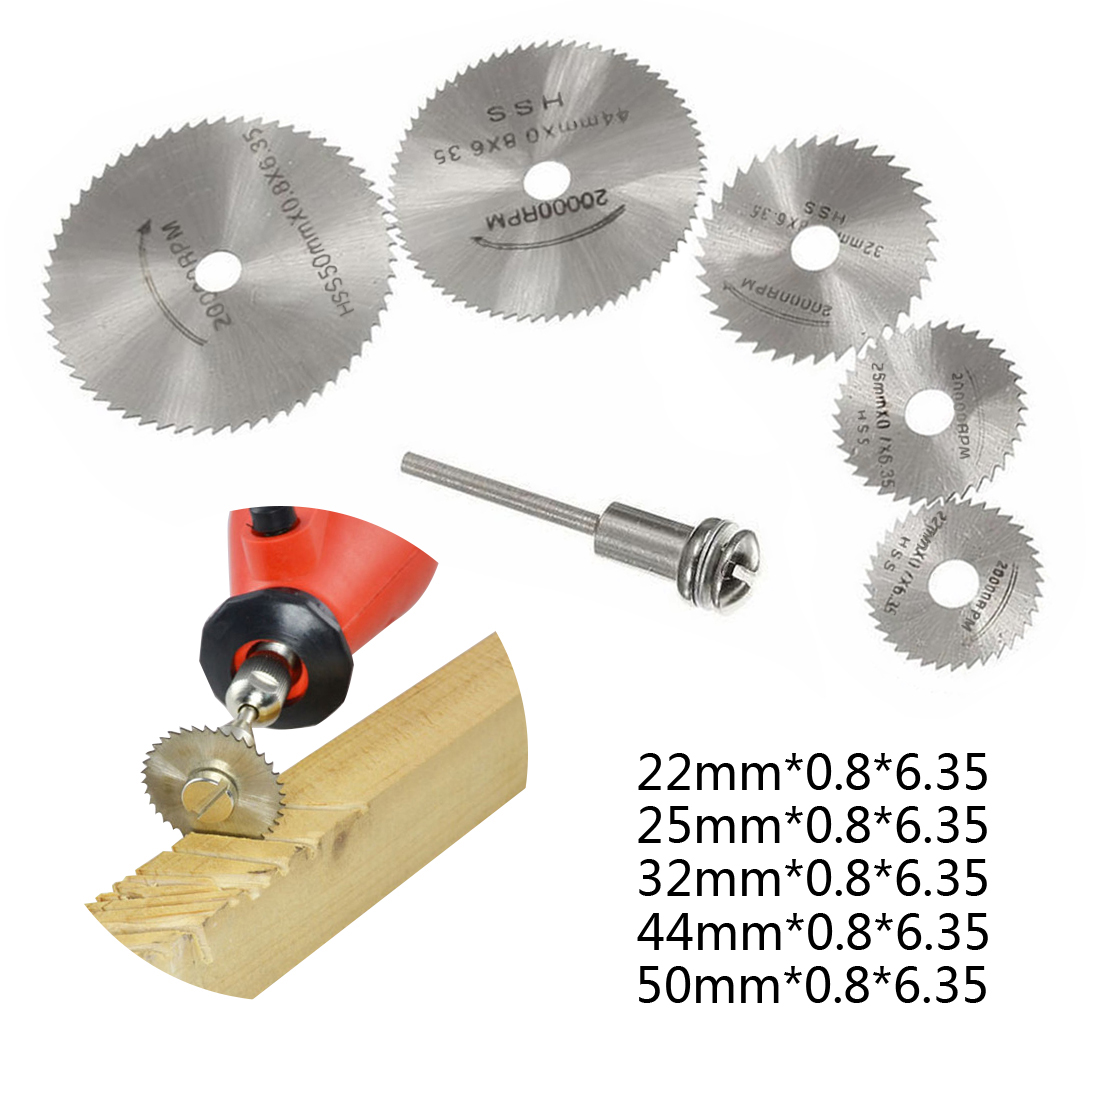 10pcs 22mm Diamond Cutting Discs Circular Saw Blade Drill Cut Off Kit For Rotary